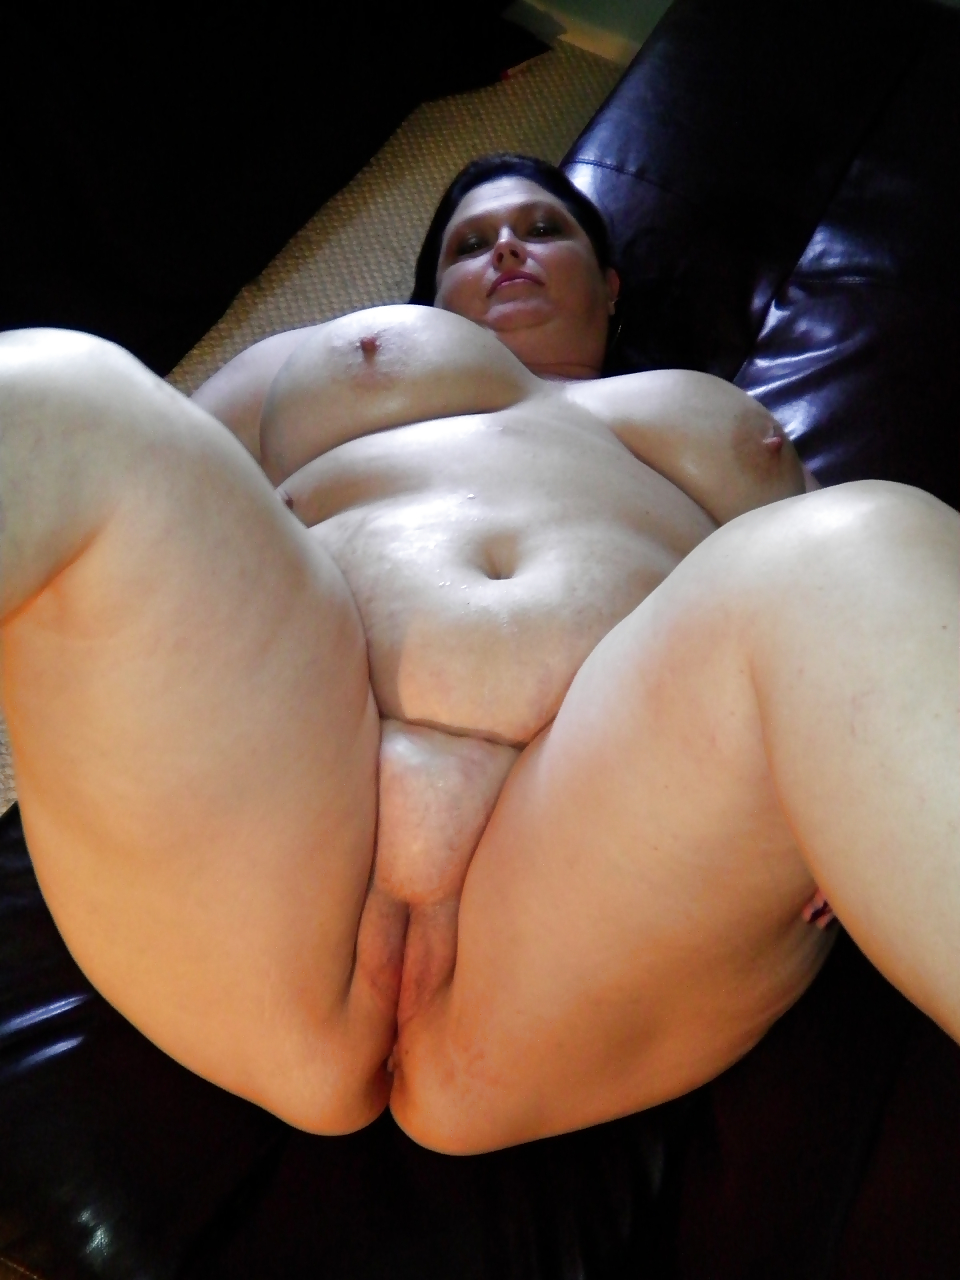 download-video-bbw-hot-pussy-female-nude-gay